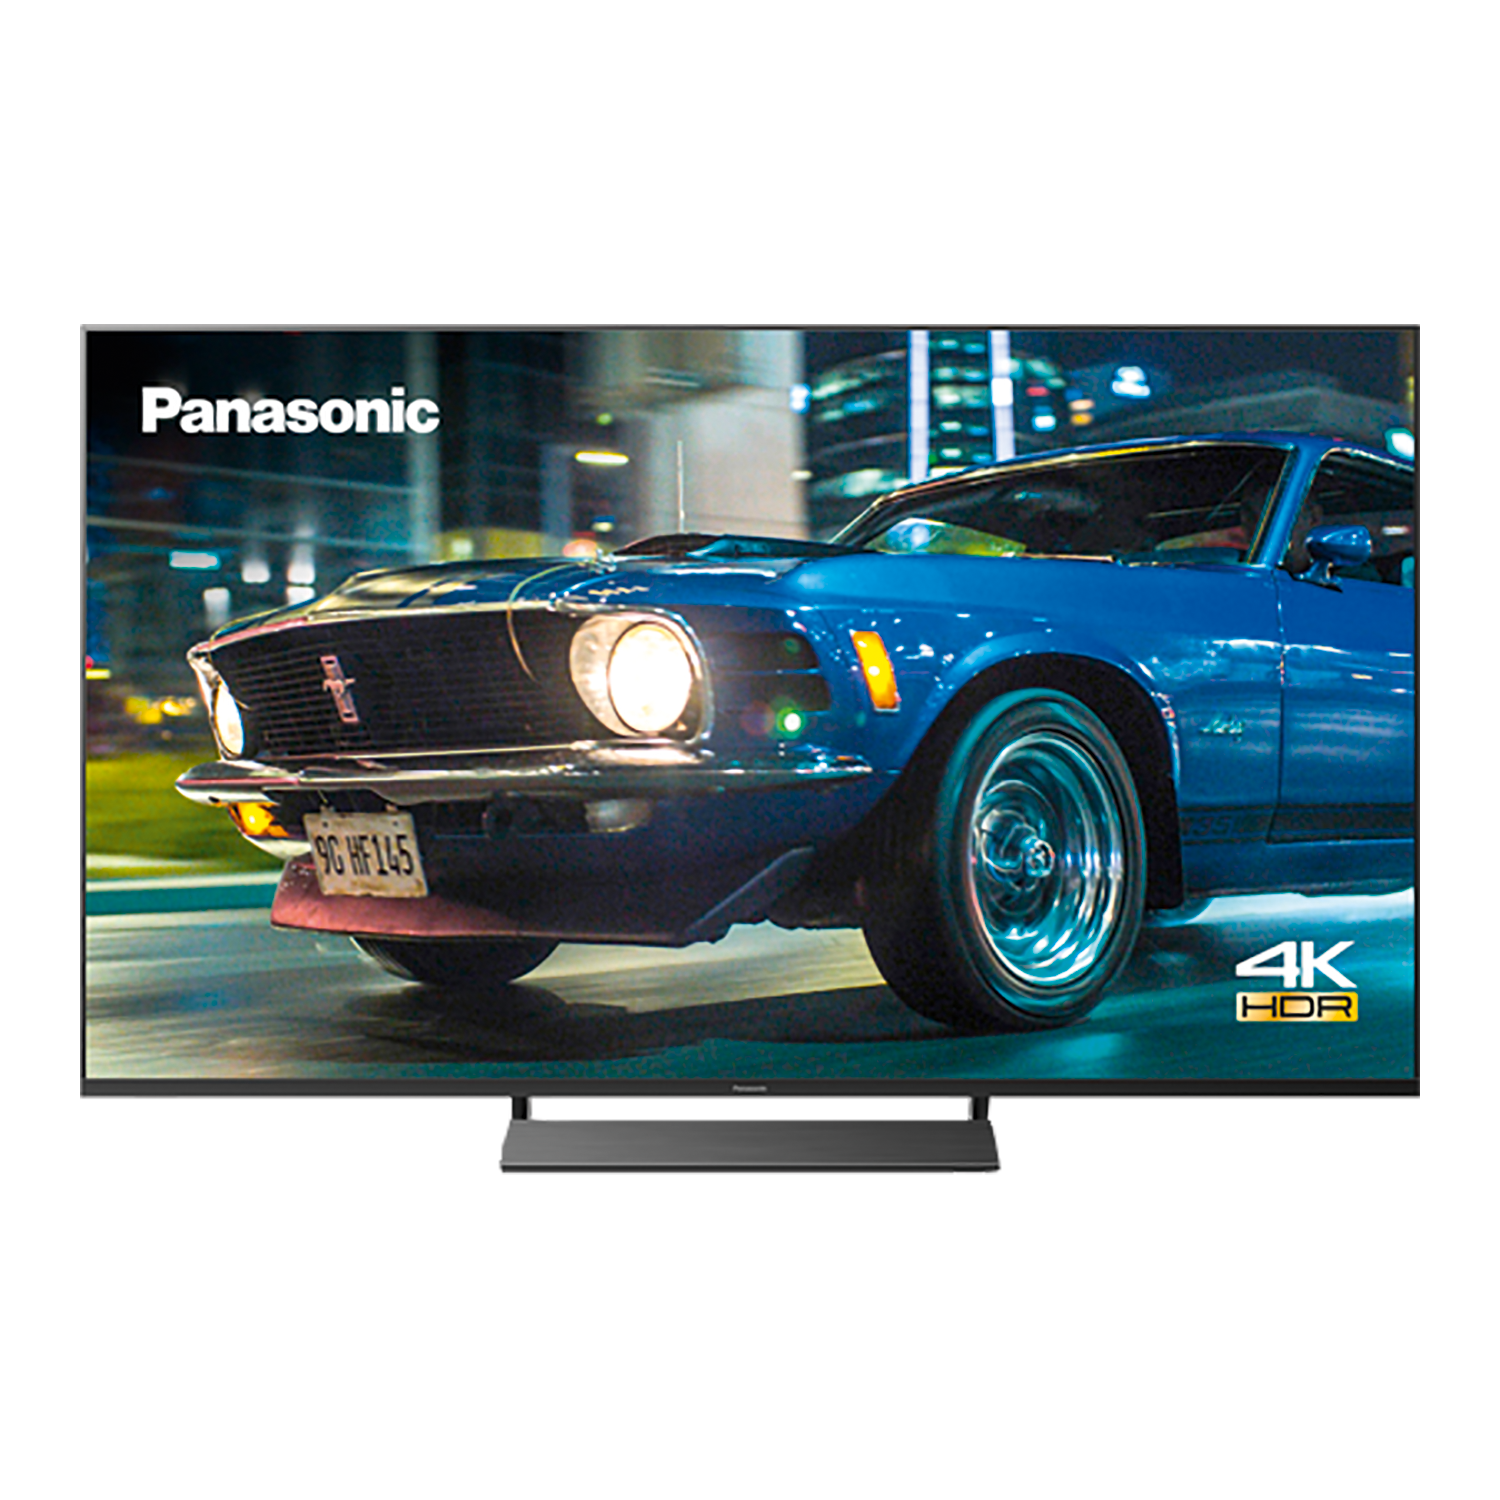 Panasonic TX-40HXW804 4K Ultra HD HDR LED Smart TV, 40″, Schwarz